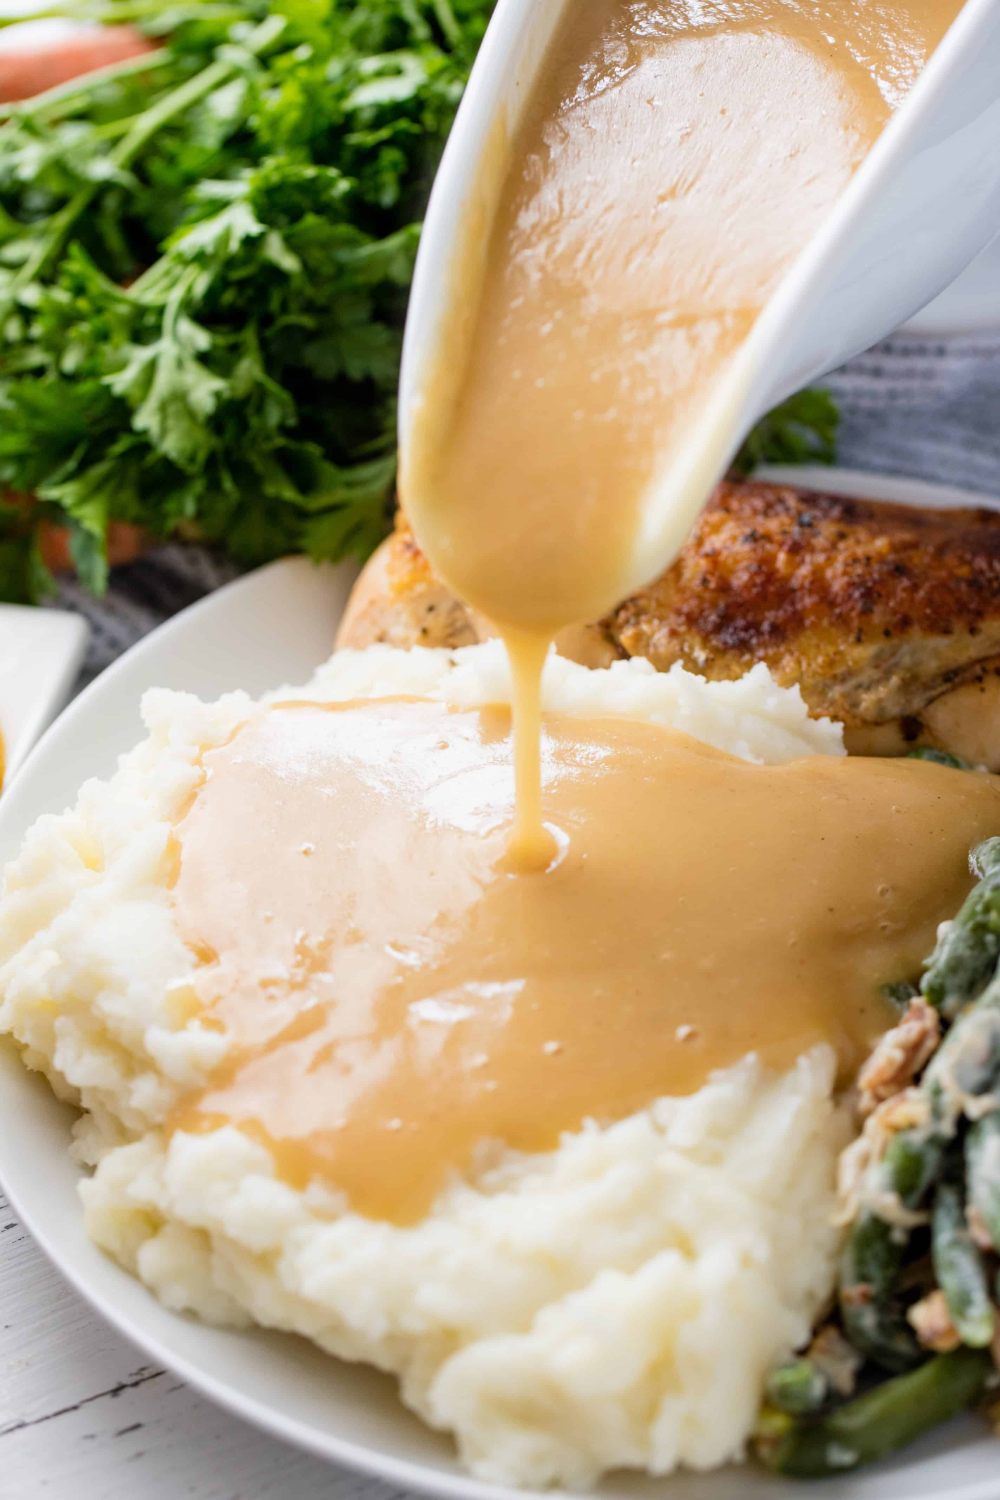 How To Make Gravy The Ultimate Guide Recipe Homemade Gravy How To Make Gravy Beef Gravy